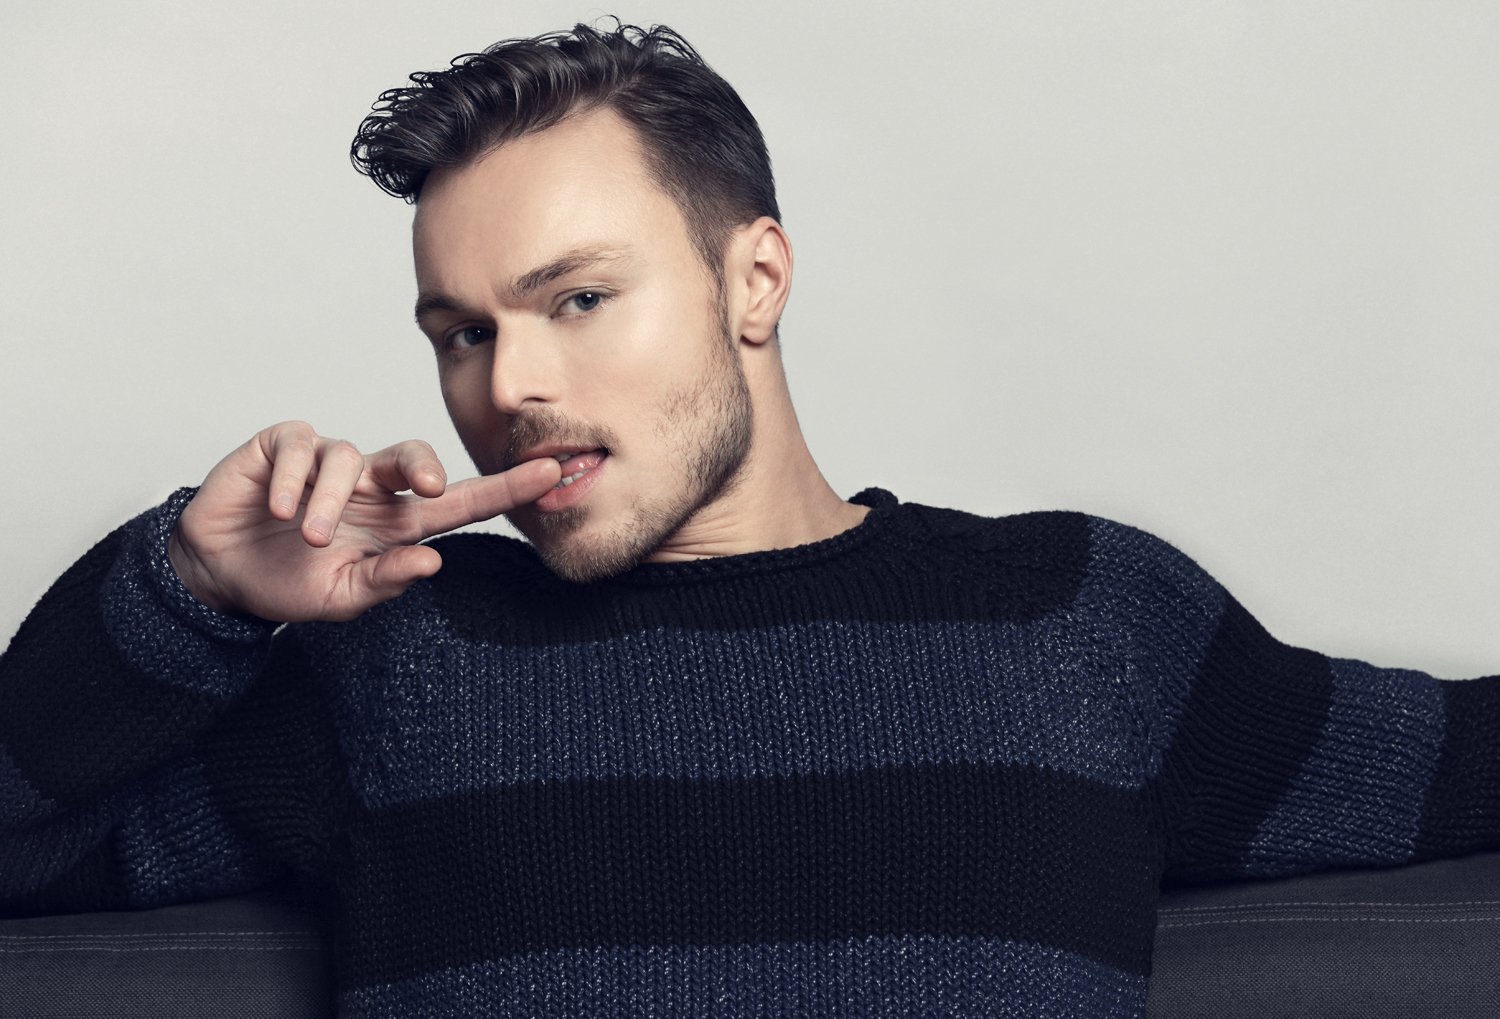 ANDREW HAYDEN SMITH | ACTOR